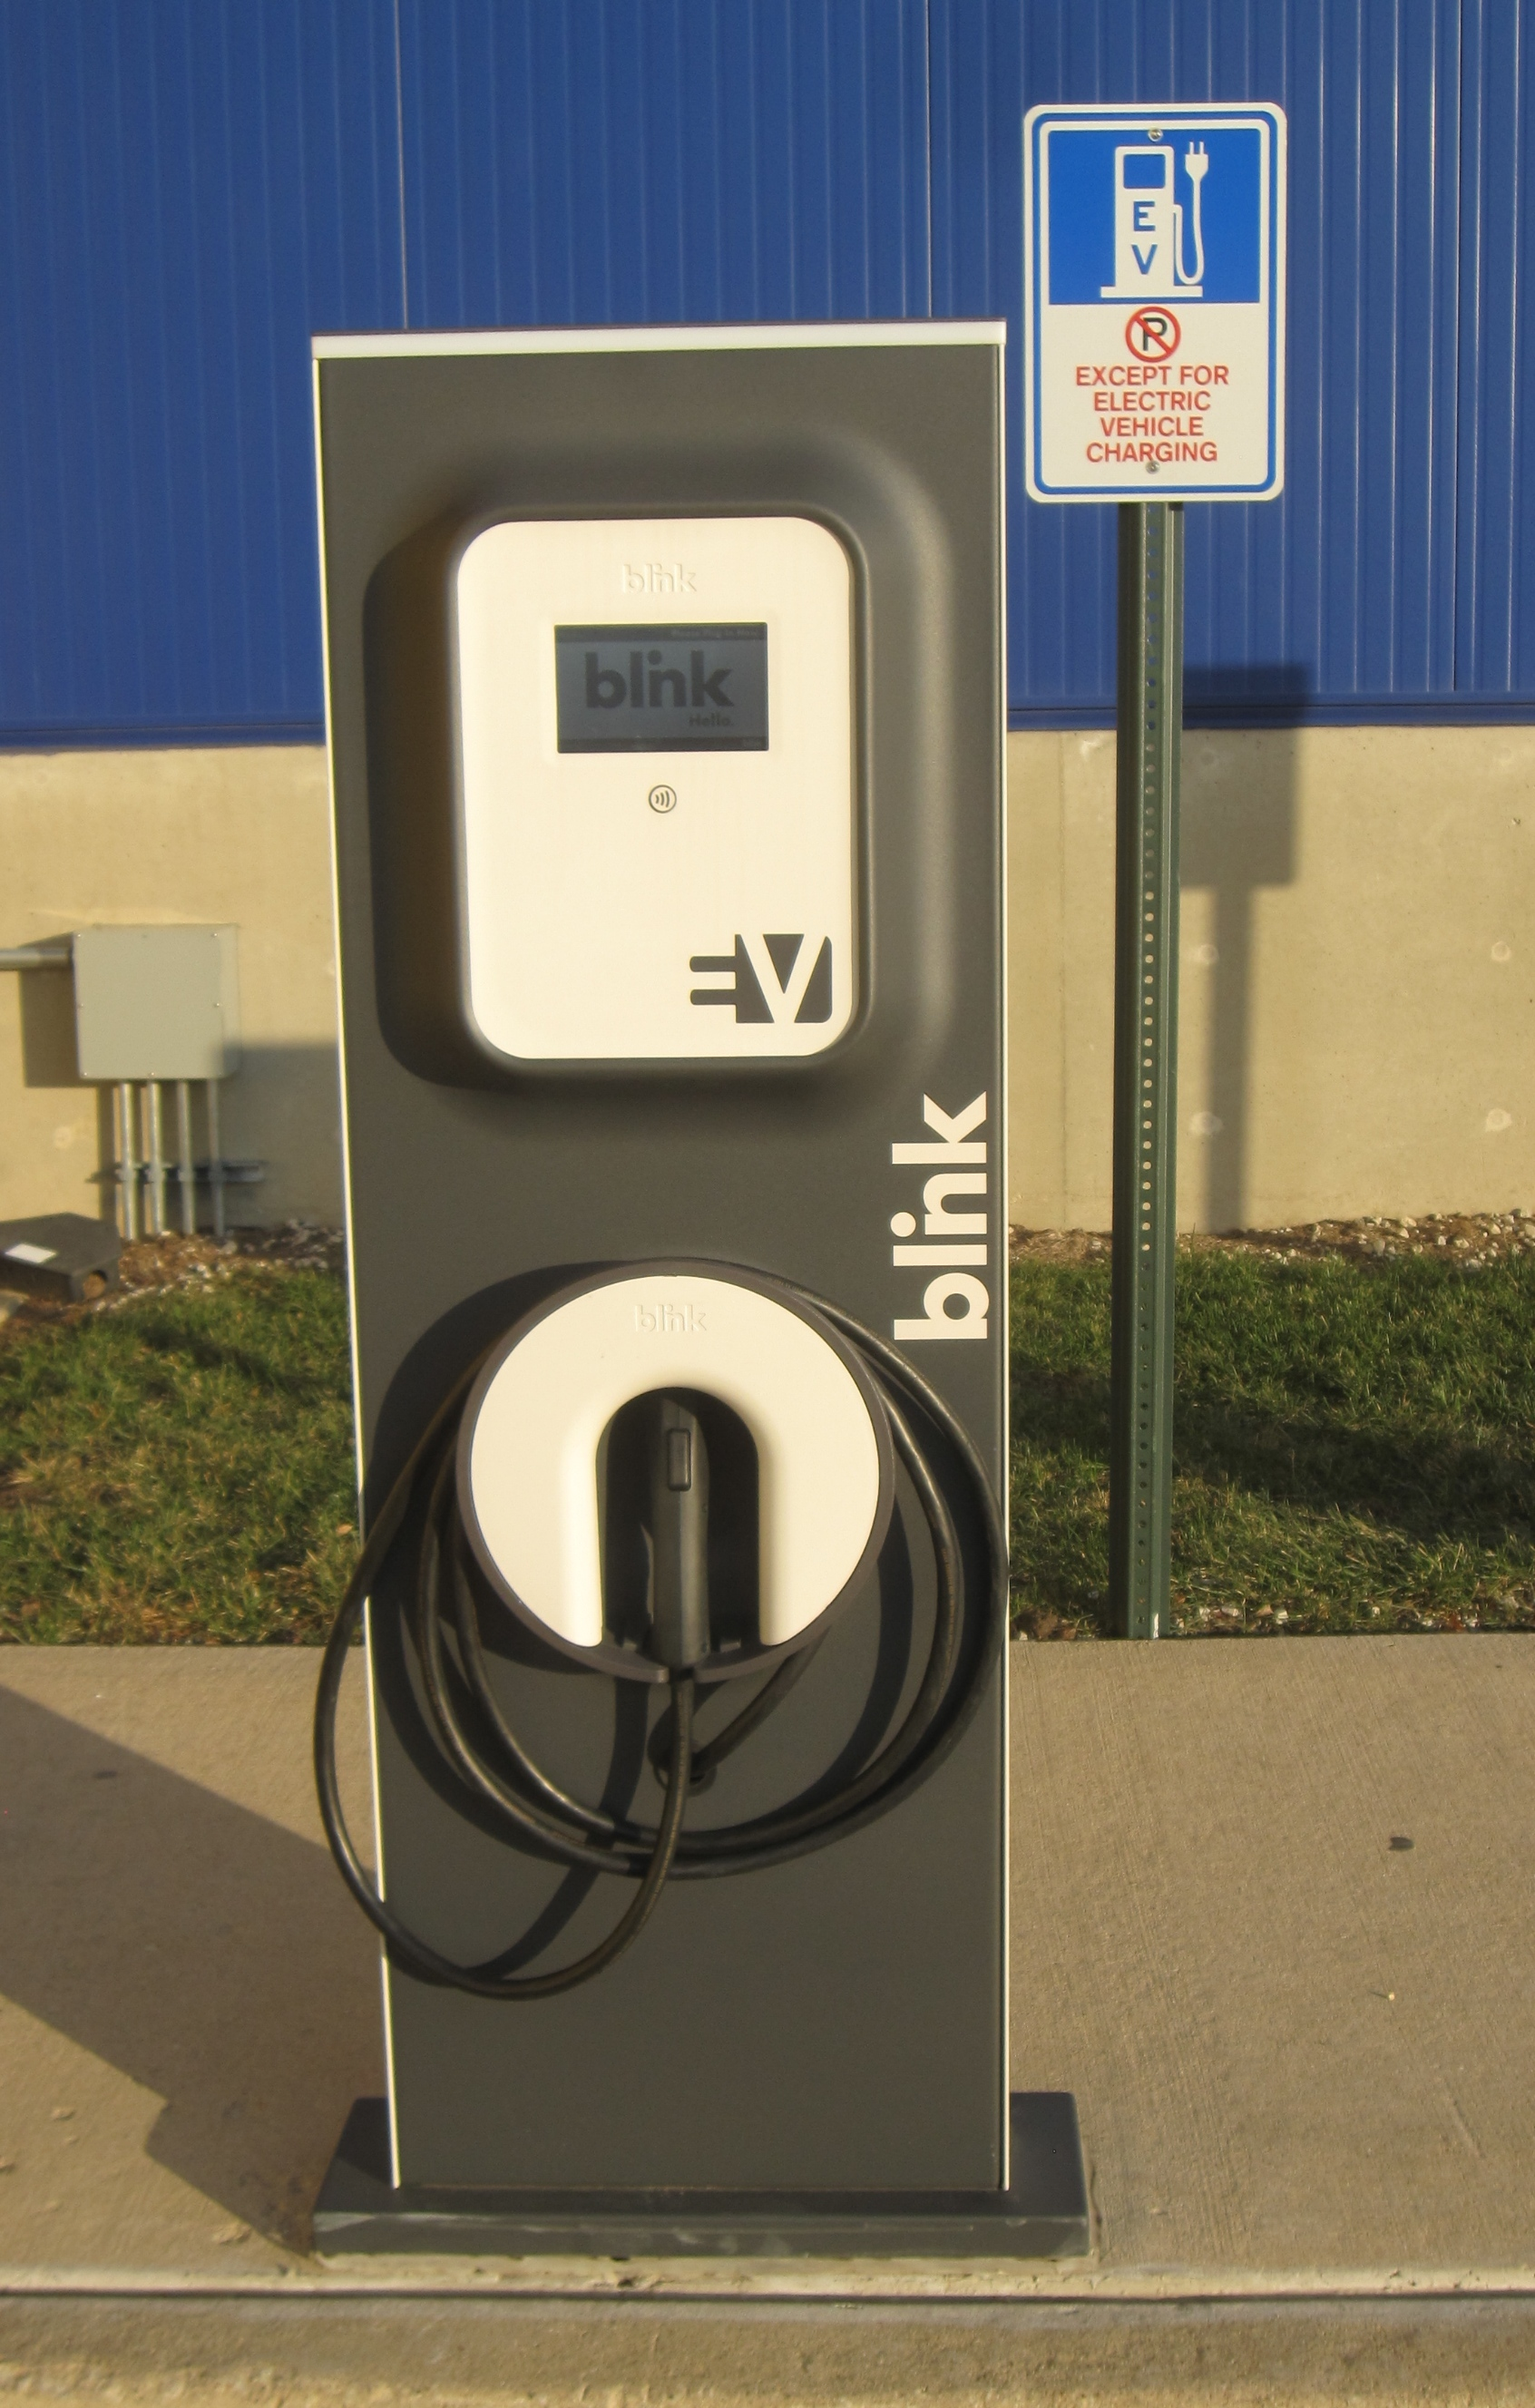 Ikea Plugs In 3 Electric Vehicle Charging Stations In Frisco Tx Tenth Ikea Store In U S To Complete Installation Of Units Business Wire Find here all the ikea stores in frisco tx. electric vehicle charging stations